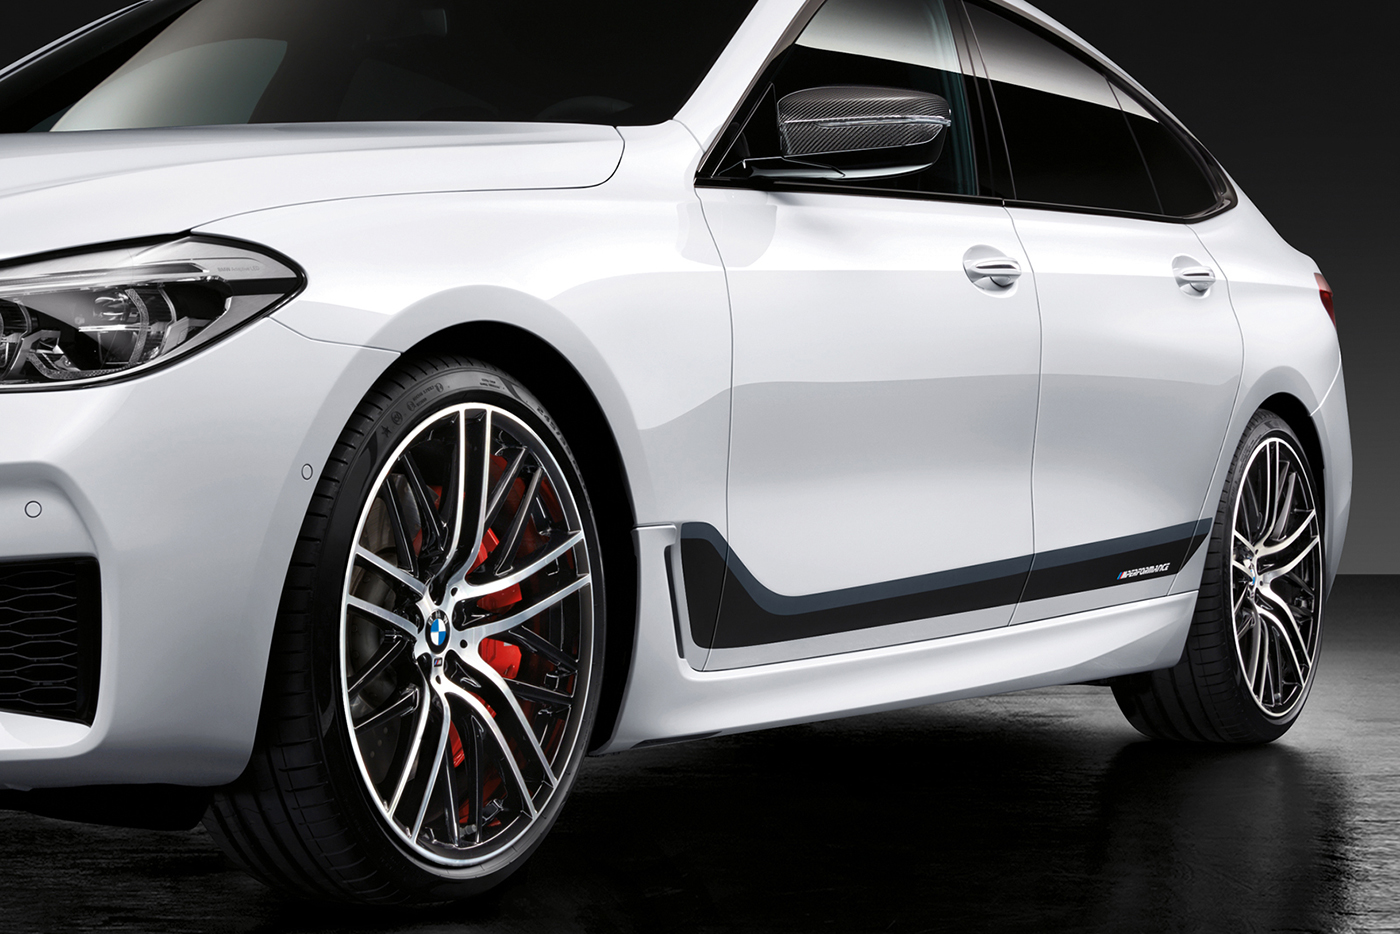 bmw-6-series-gt-m-performance-5.jpg